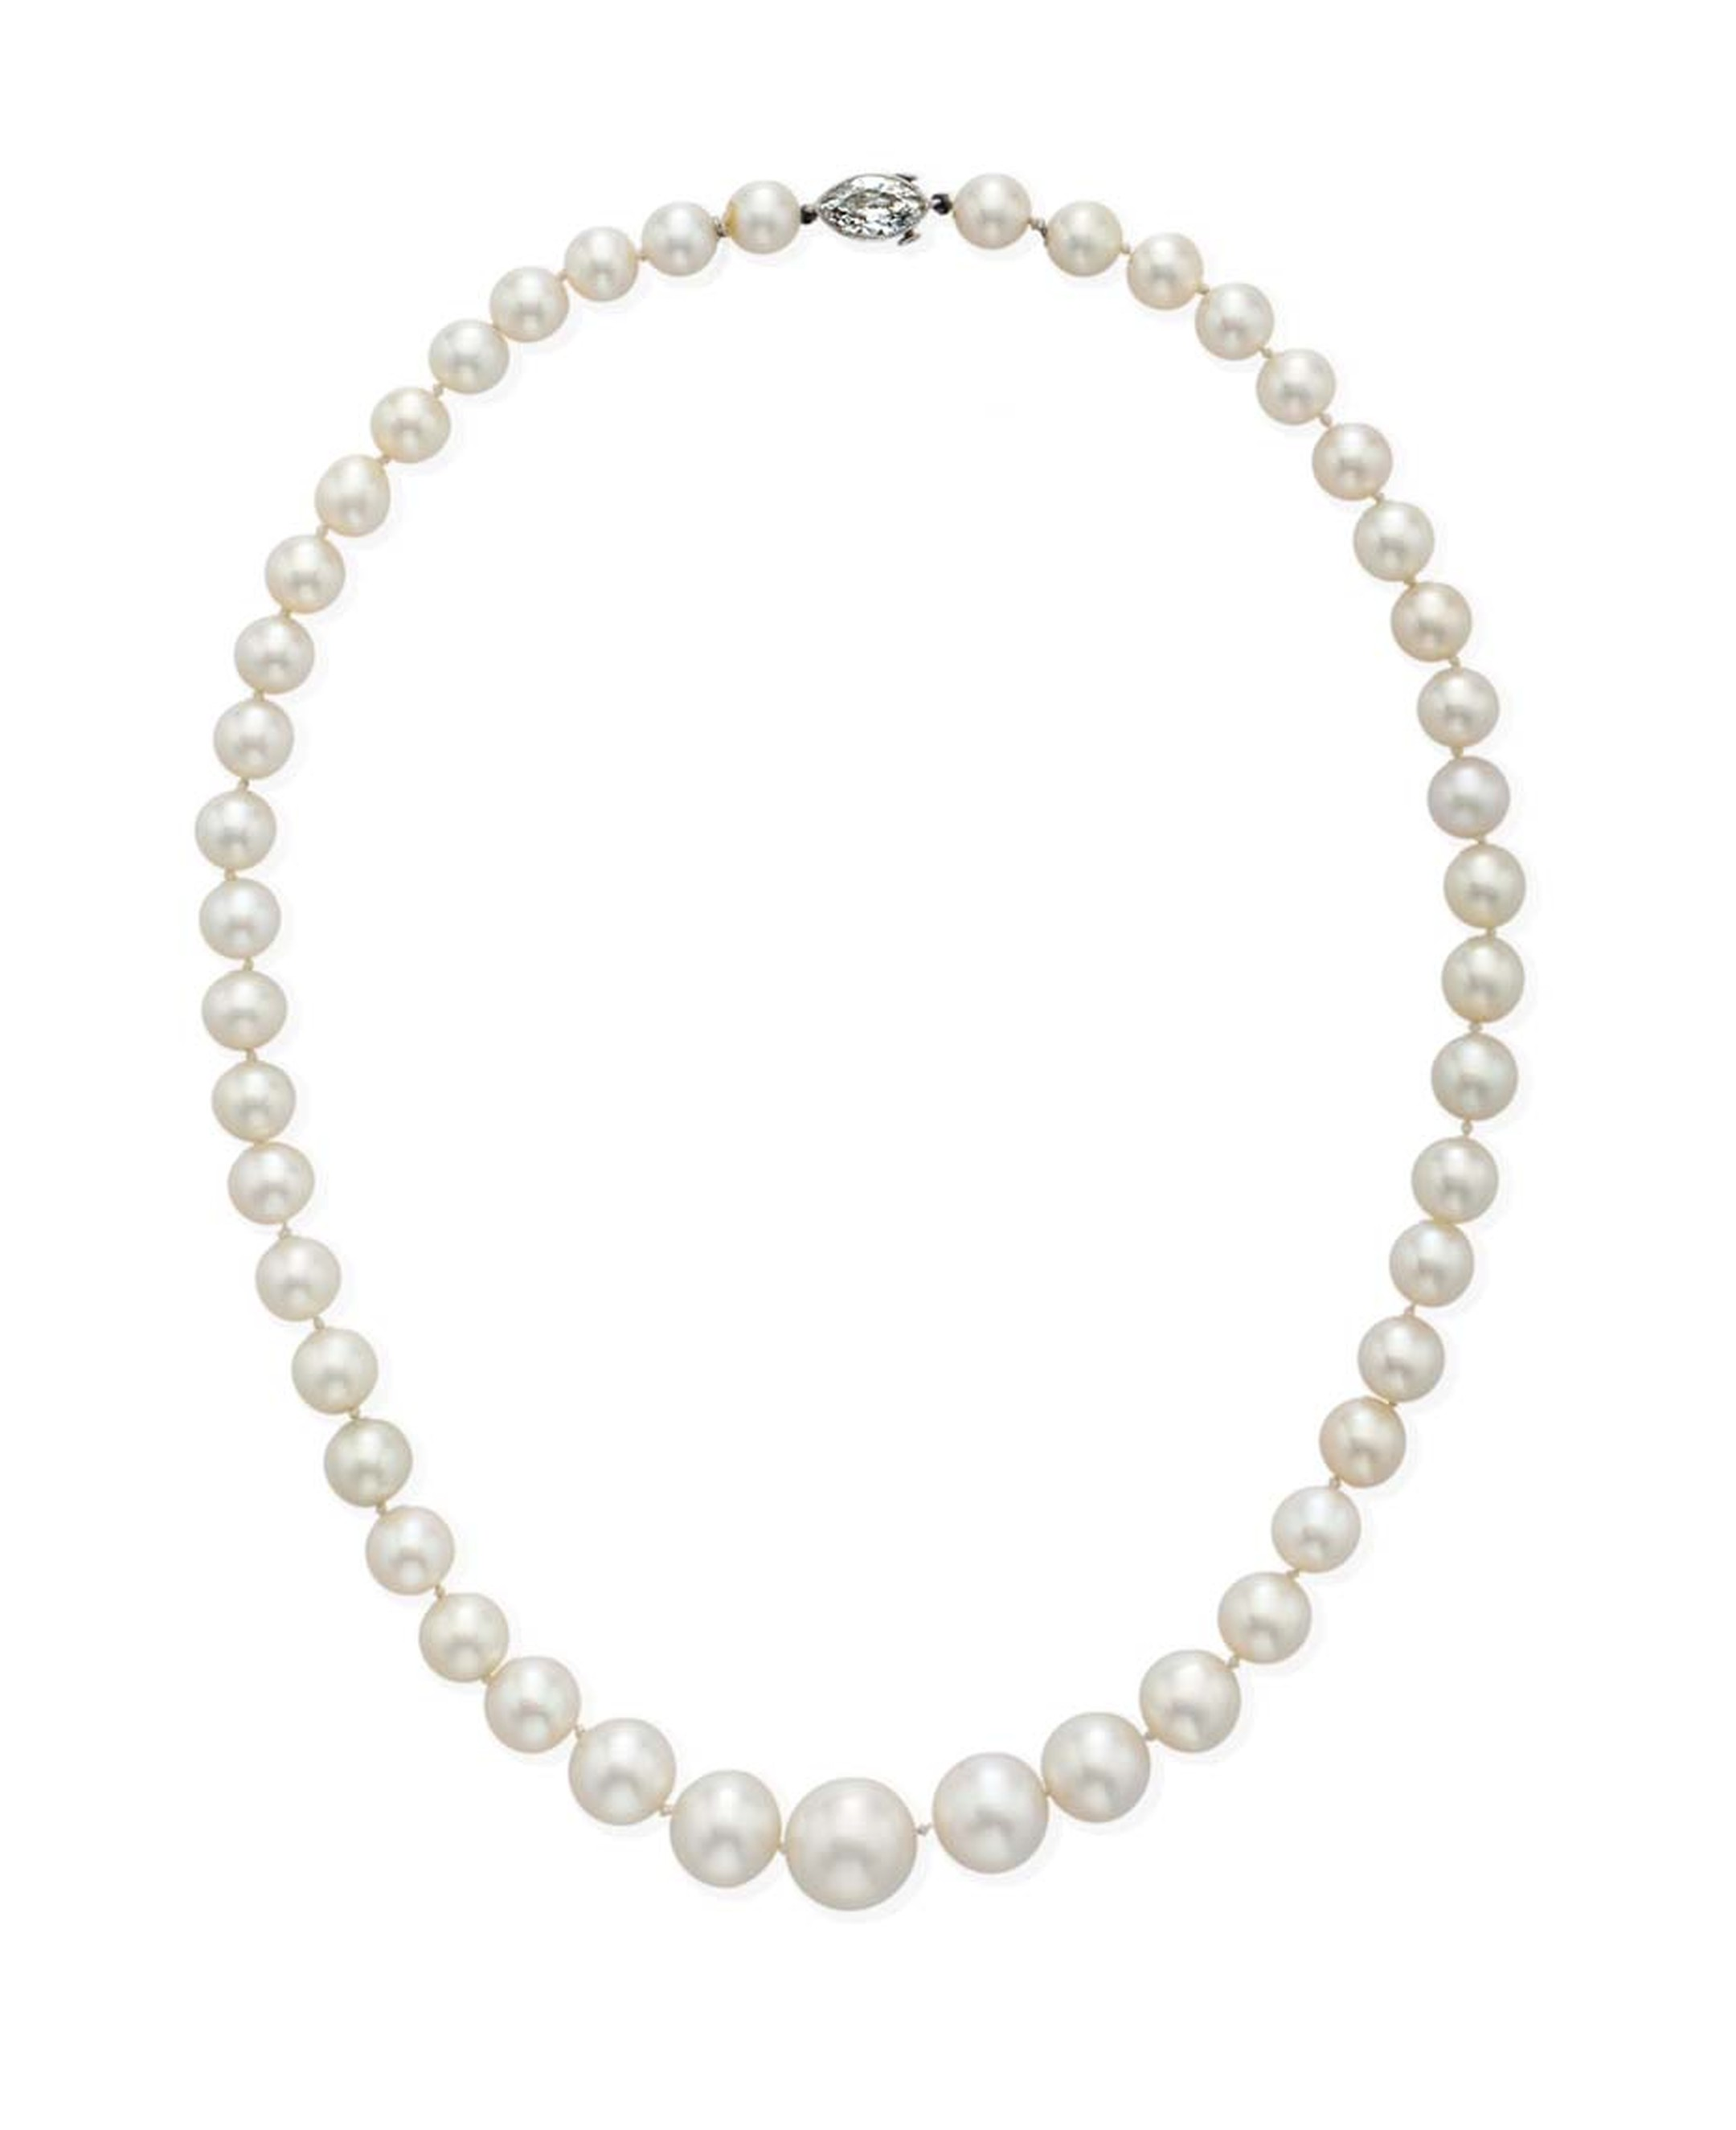 Natural pearls have been attracting a bidding frenzy at auction recently, and this single-strand natural pearl necklace continued the trend by outperforming its pre-sale estimate of $400-600,000 and achieving $1.05 million.